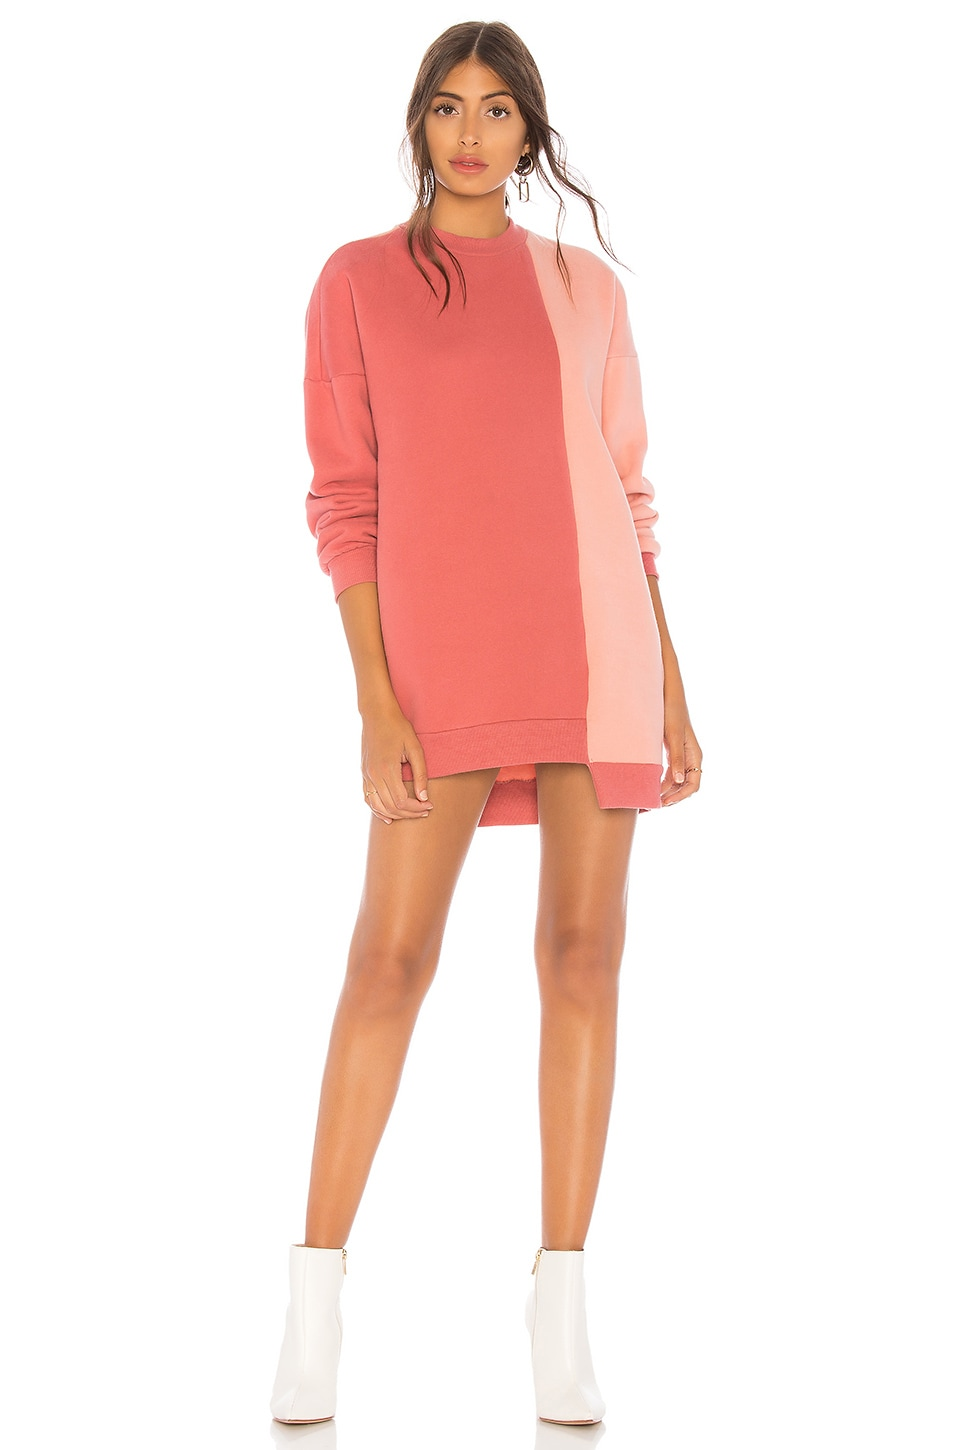 Lovers + Friends Gameday Sweatshirt Dress in Mixed Rose